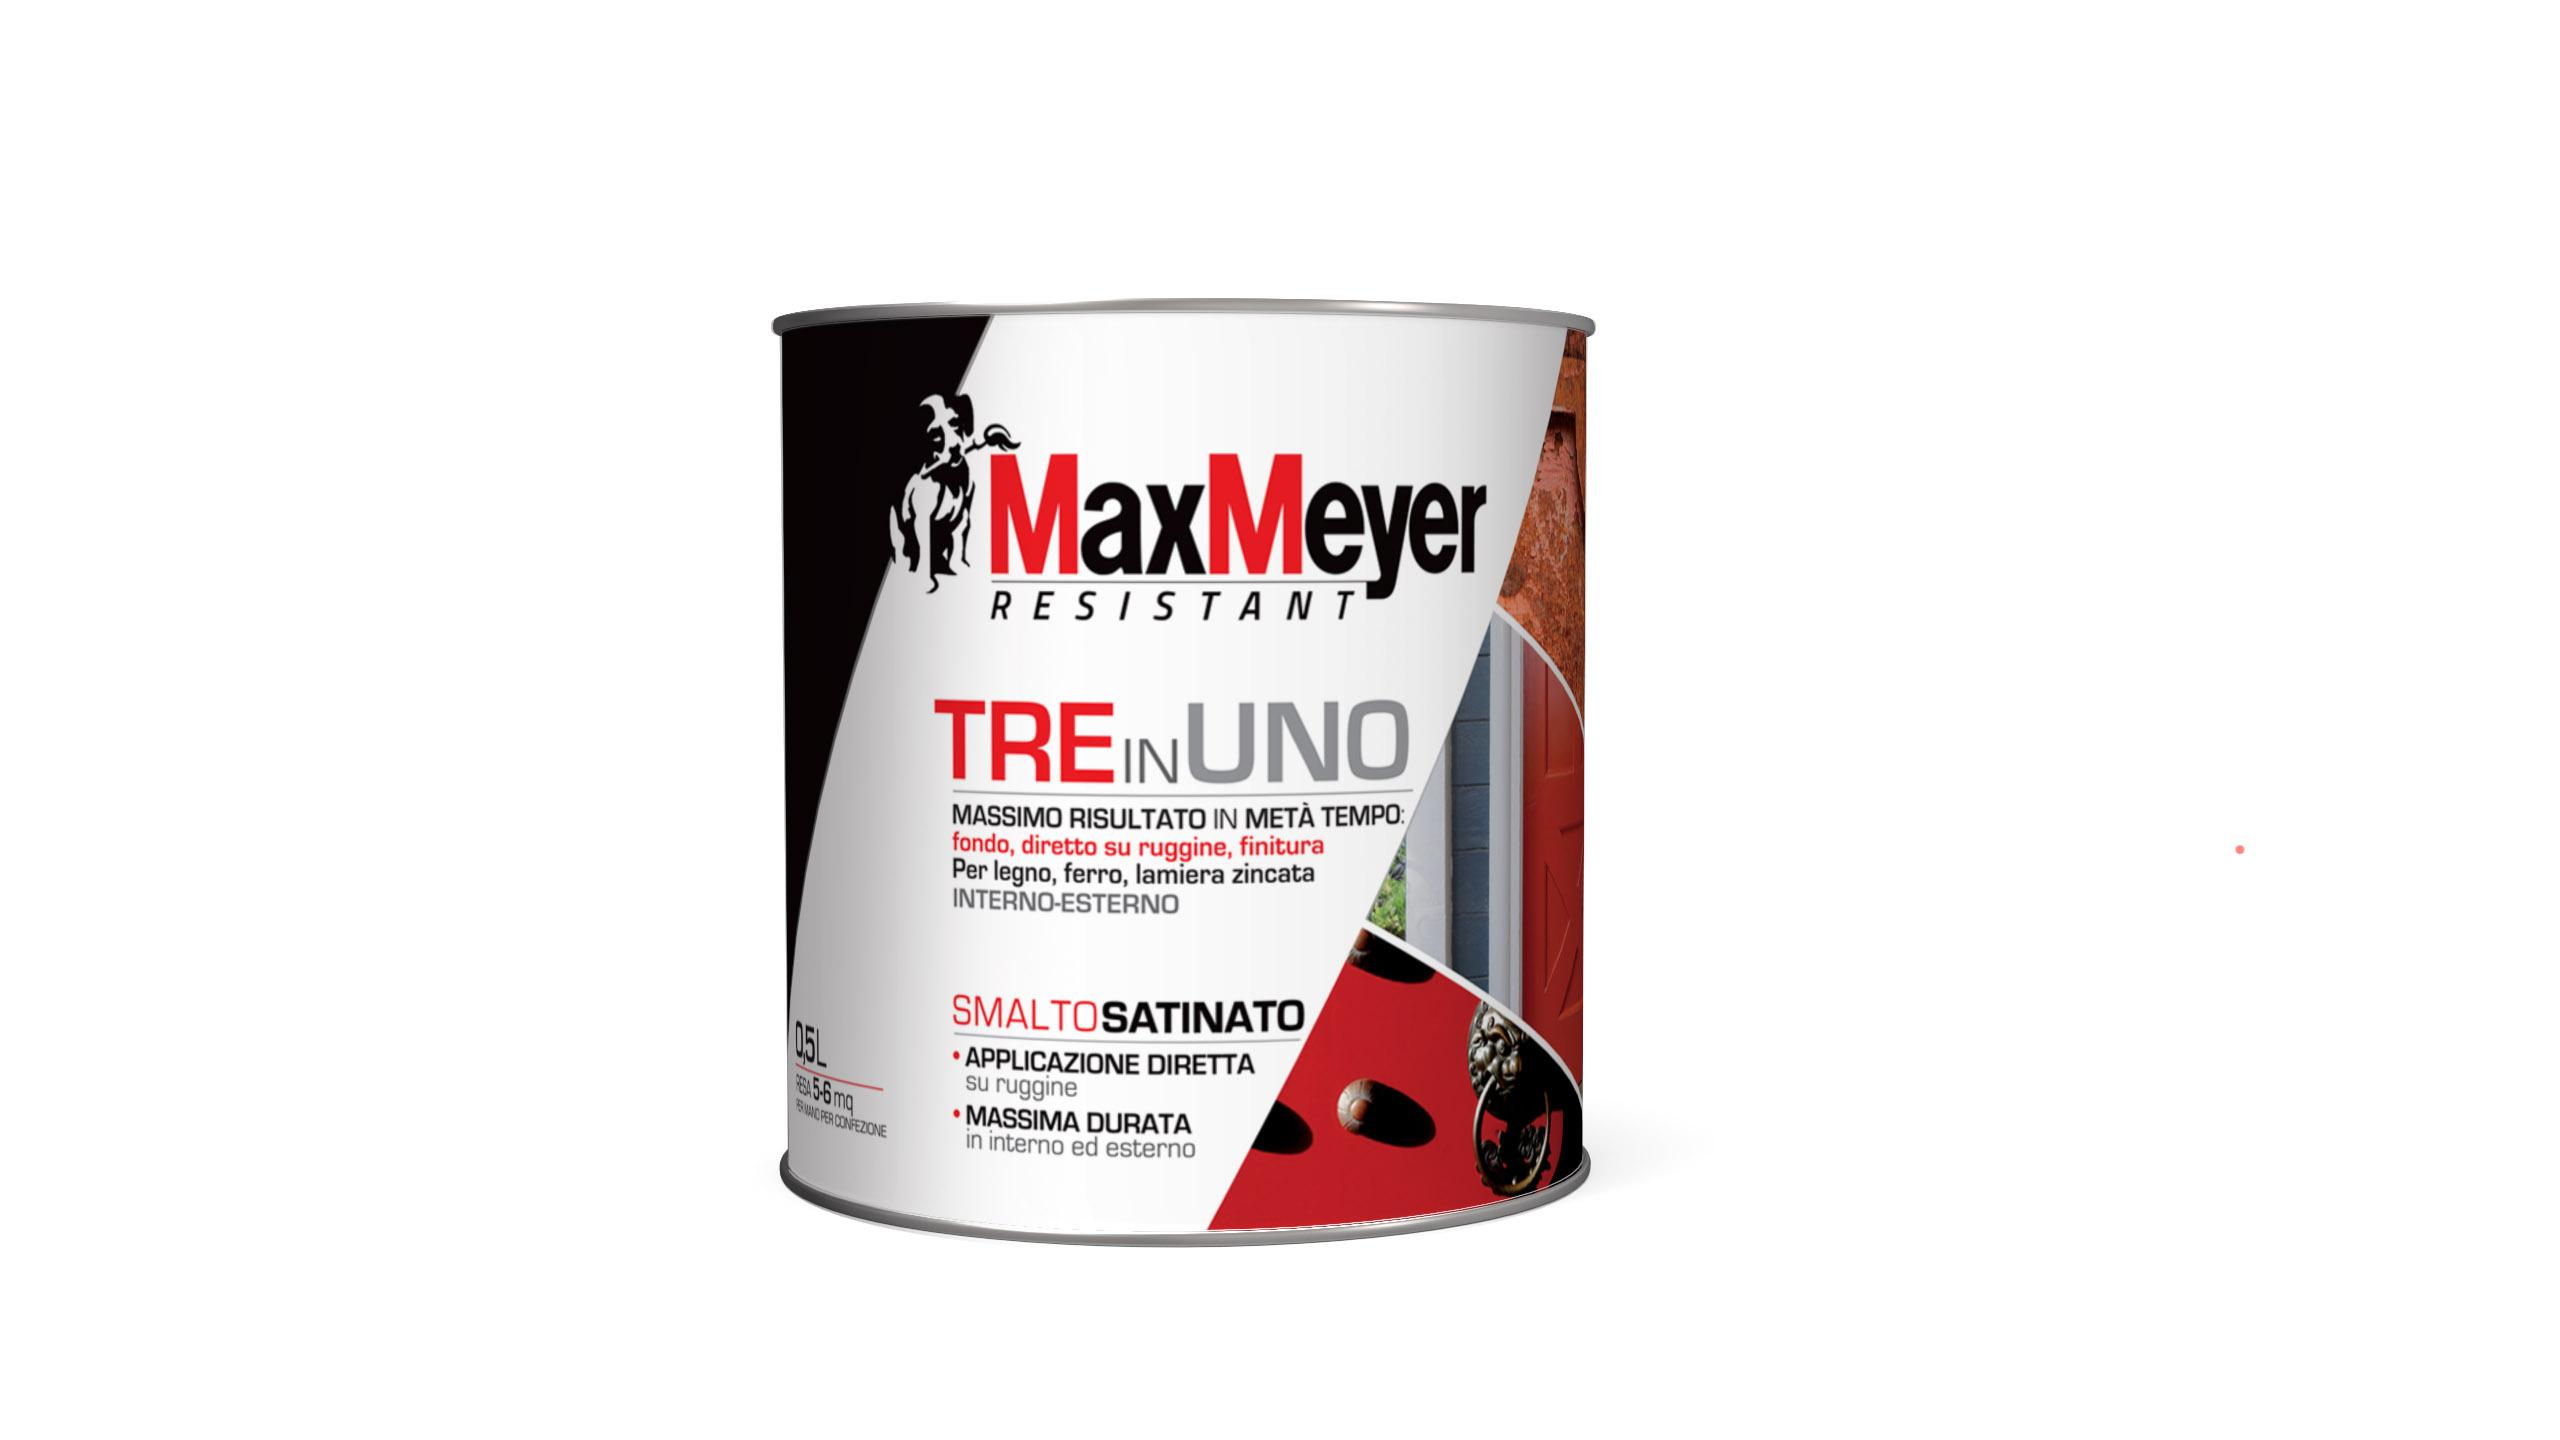 MaxMeyer, pittura innovativa 3 in 1